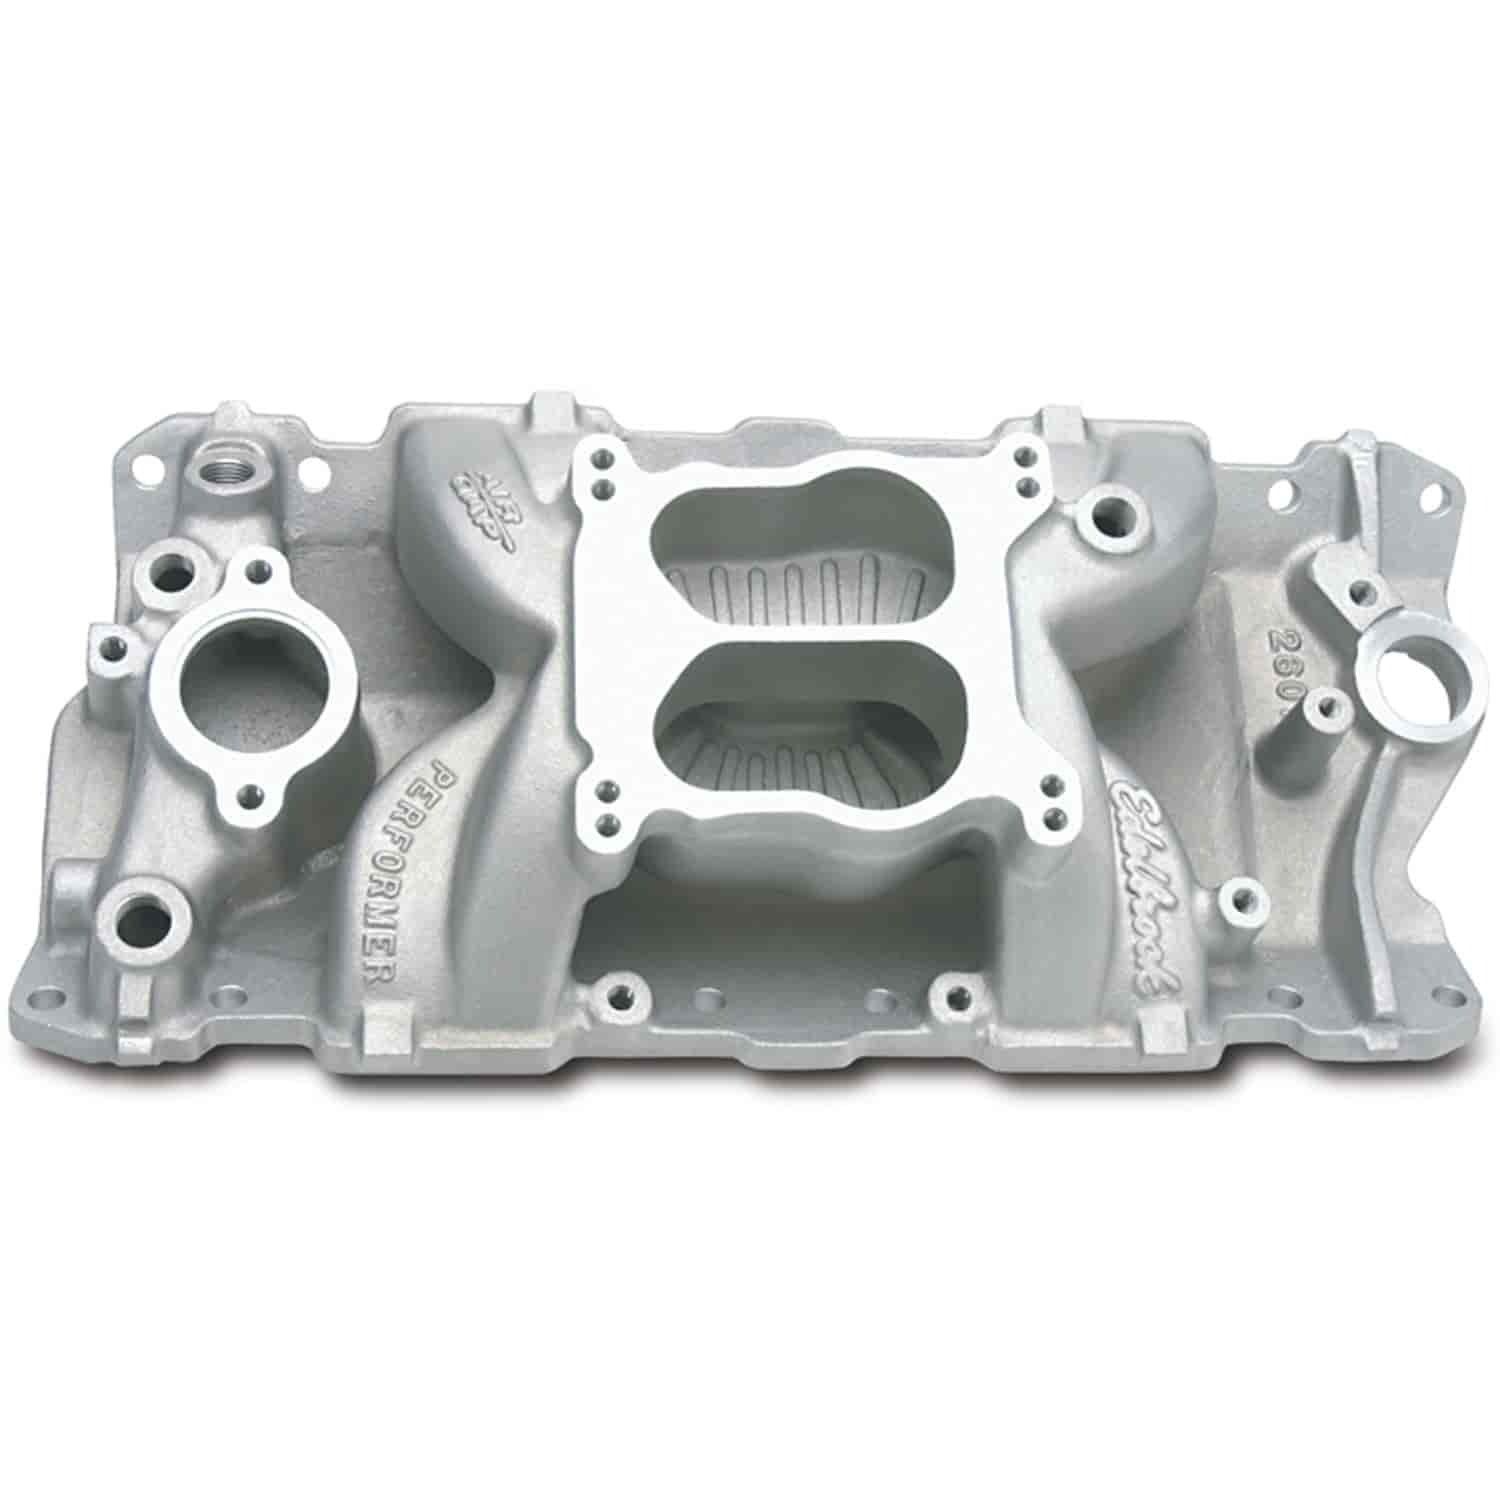 Edelbrock Performer Air-Gap Small Block Chevy Intake Manifold